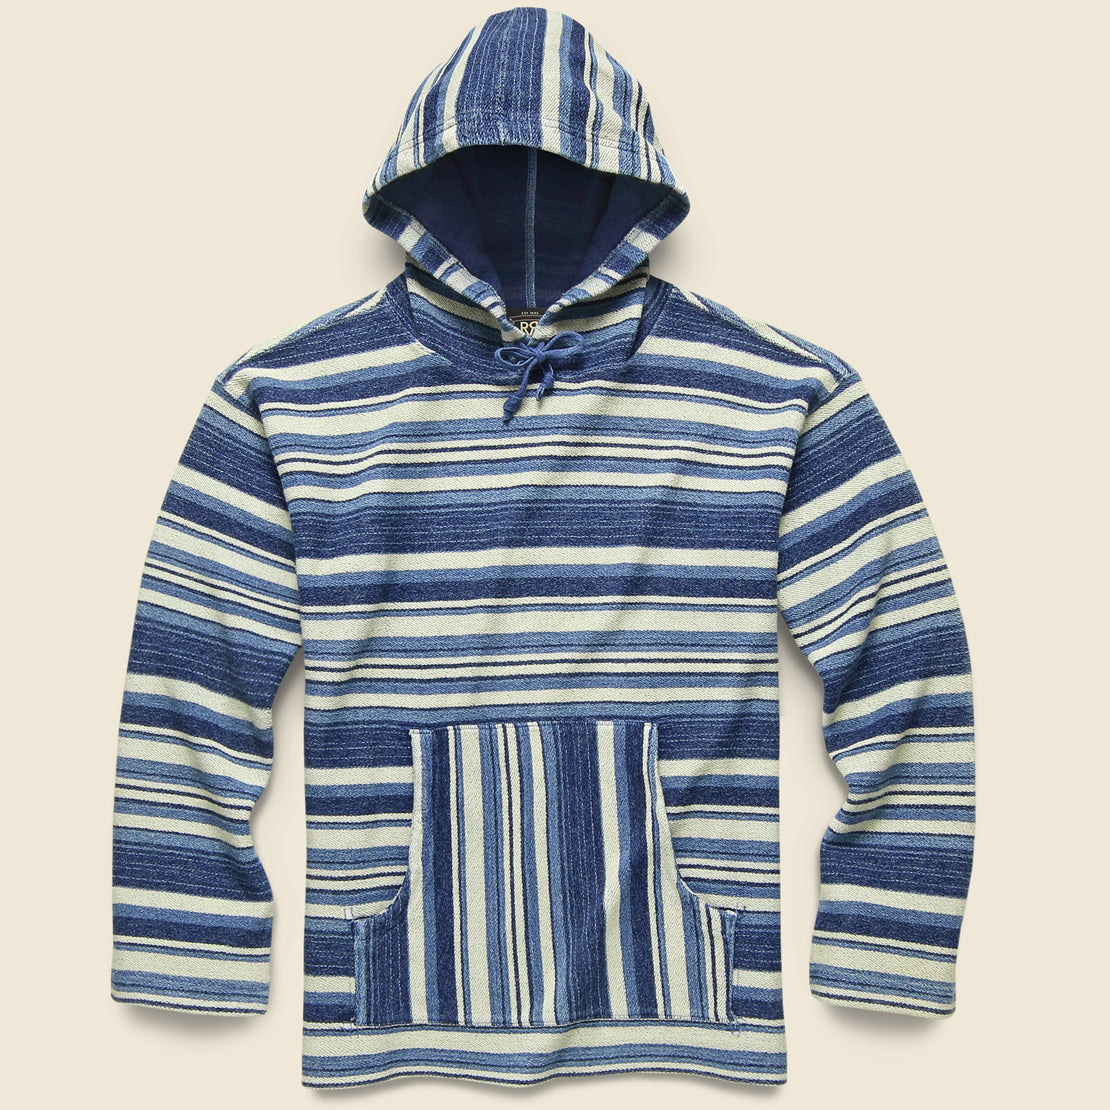 RRL French Terry Hoodie - Indigo Multi Stripe